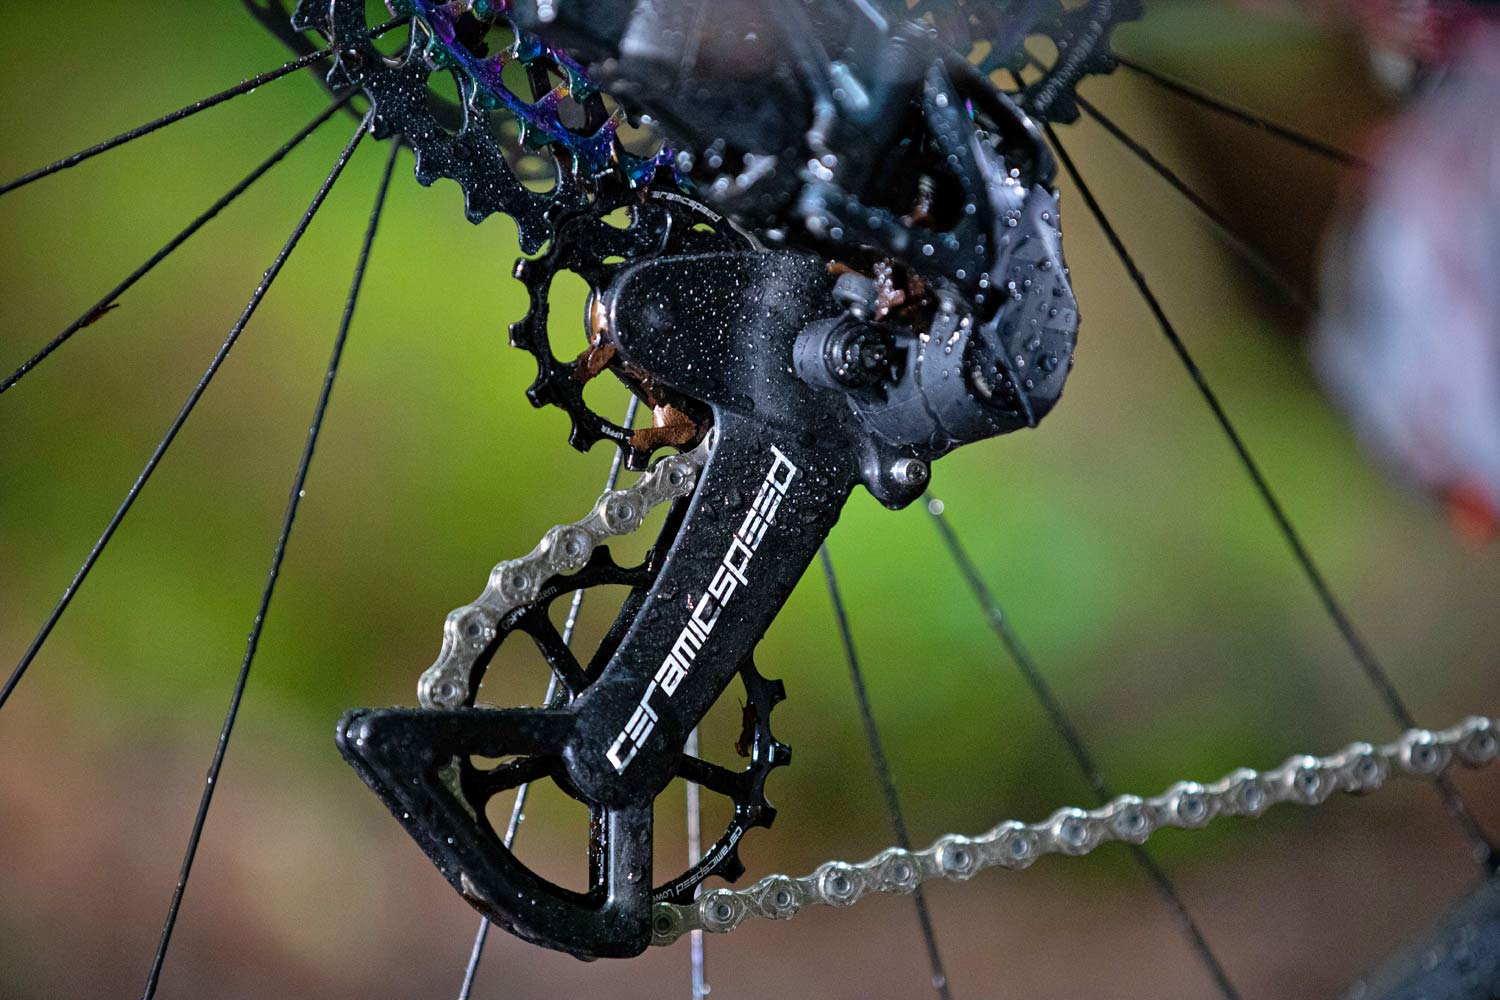 CeramicSpeed OSPW X SRAM Eagle kit, ceramic bearing oversized pulley wheel derailleur upgrade